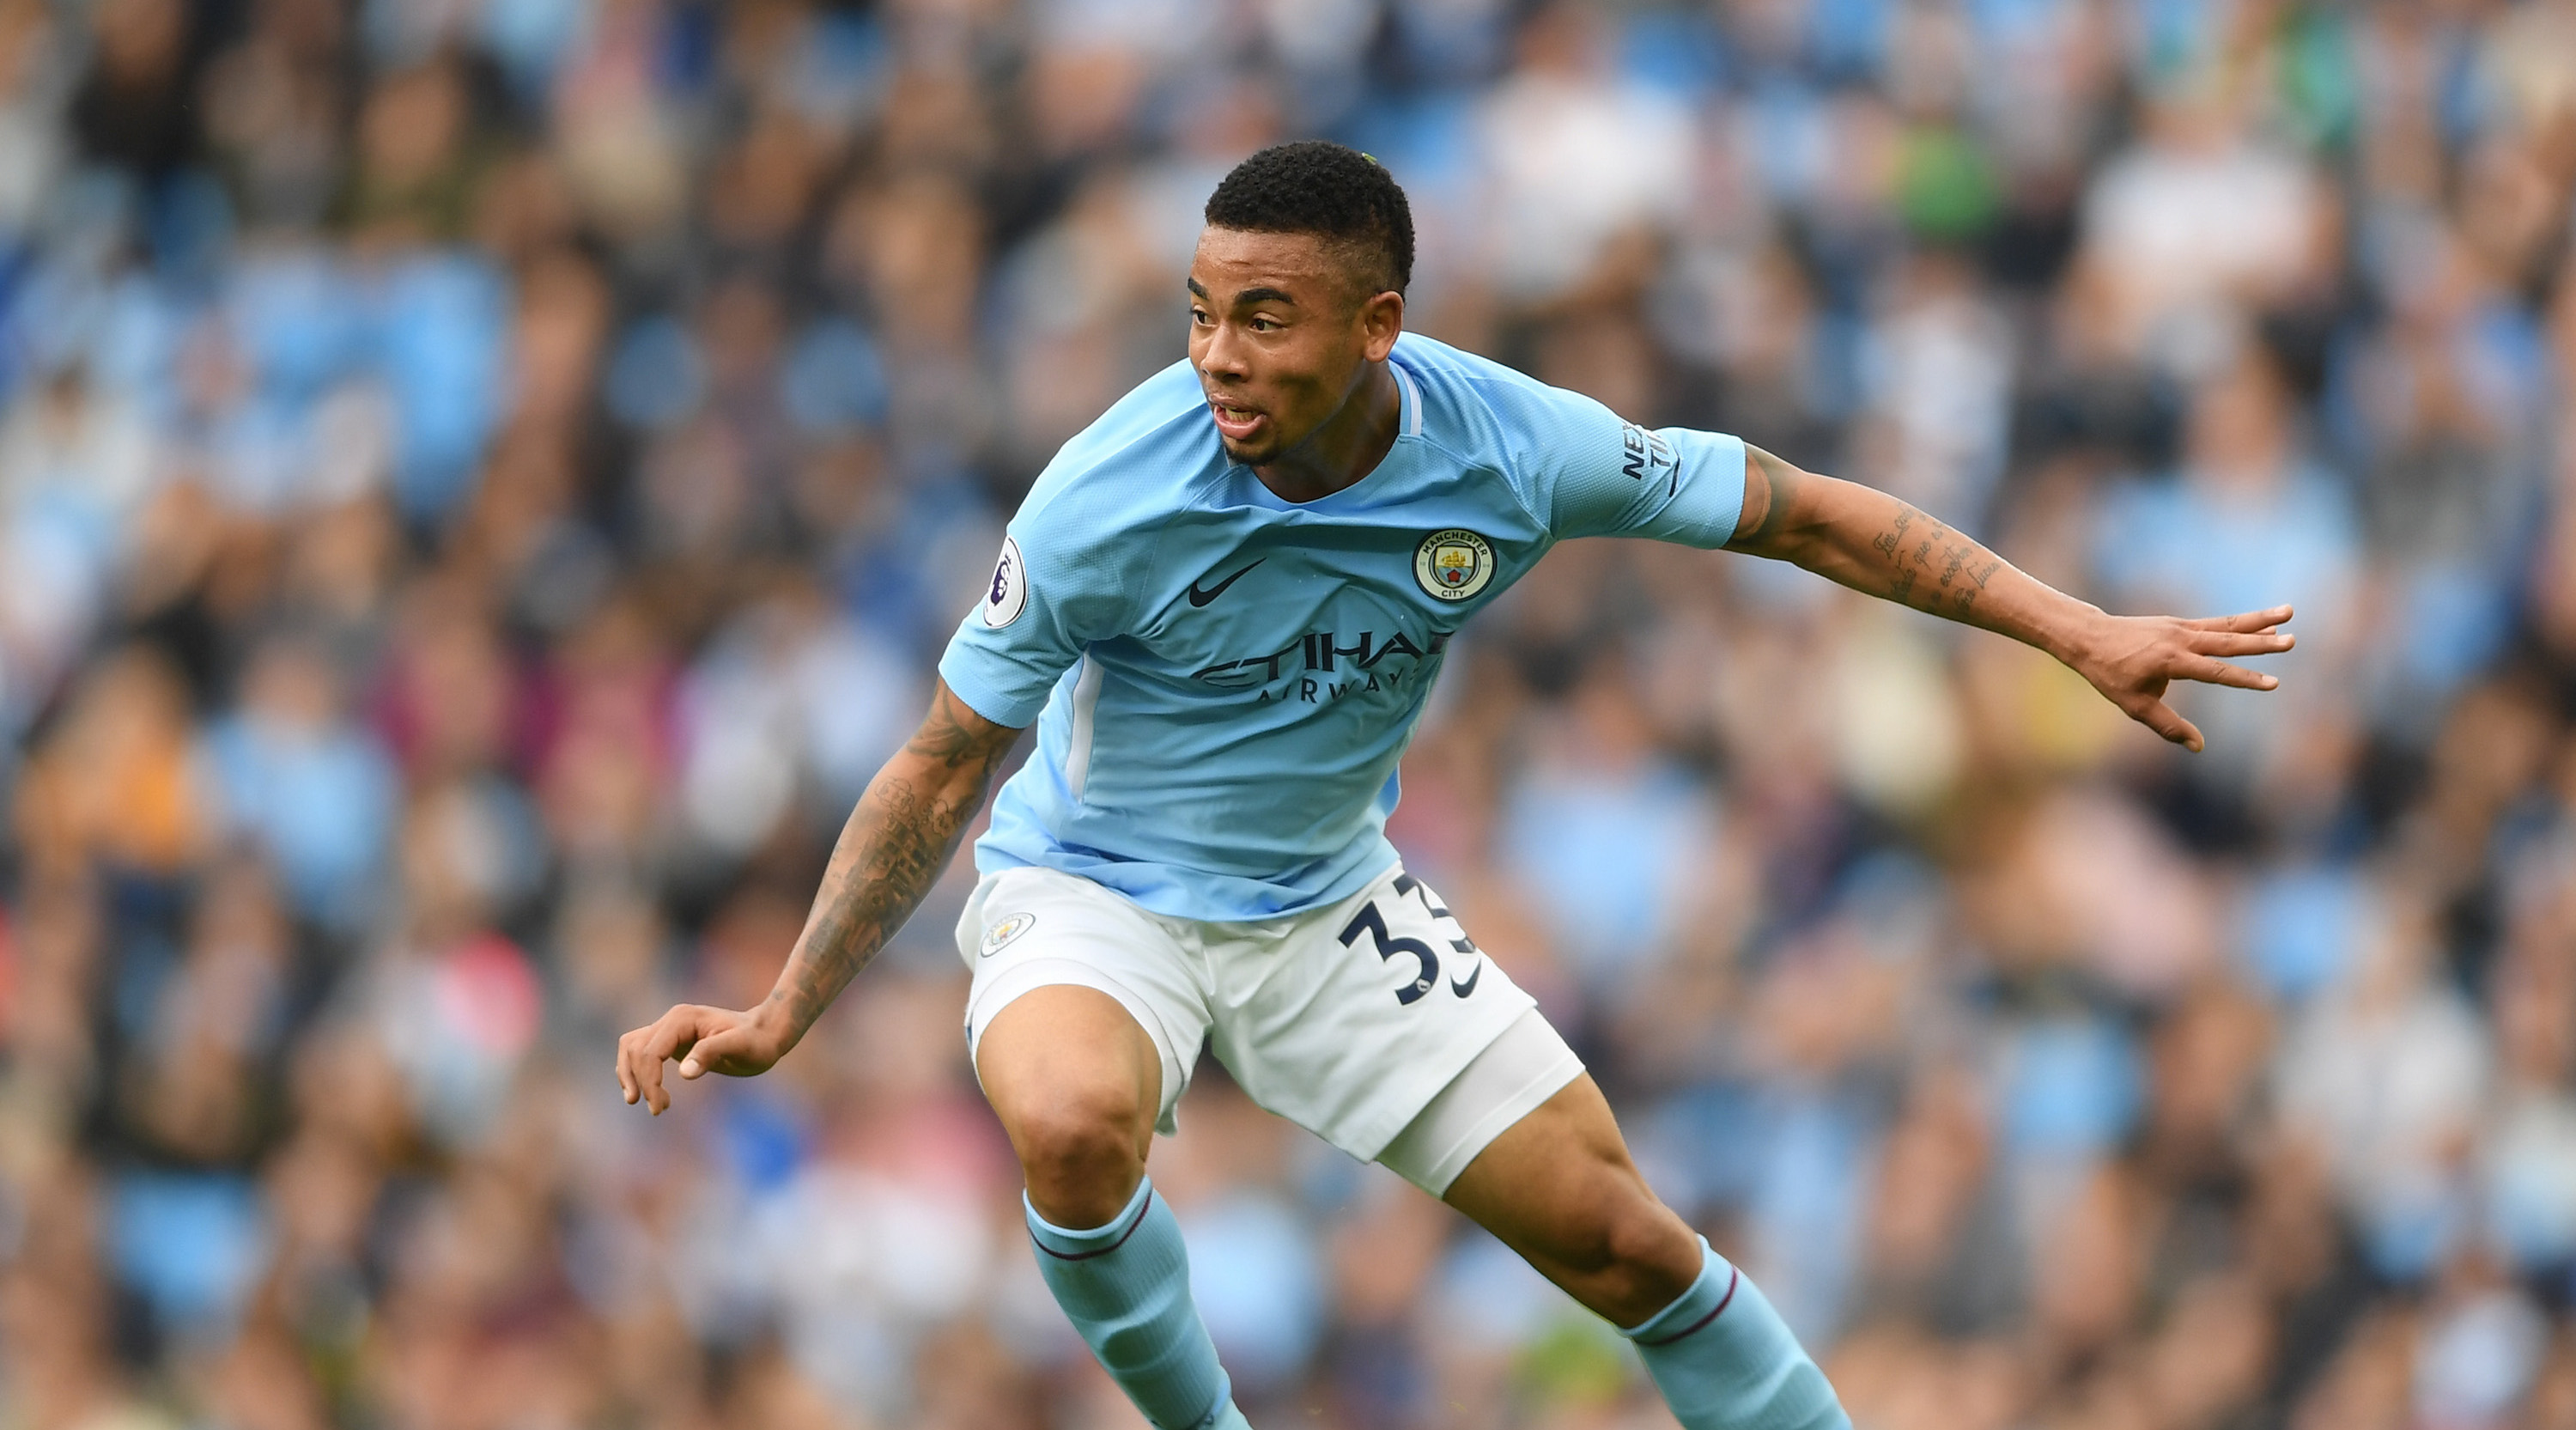 MANCHESTER, ENGLAND - OCTOBER 14: Gabriel Jesus of Manchester City in action during the Premier League match between Manchester City and Stoke City at Etihad Stadium on October 14, 2017 in Manchester, England. (Photo by Laurence Griffiths/Getty Images)